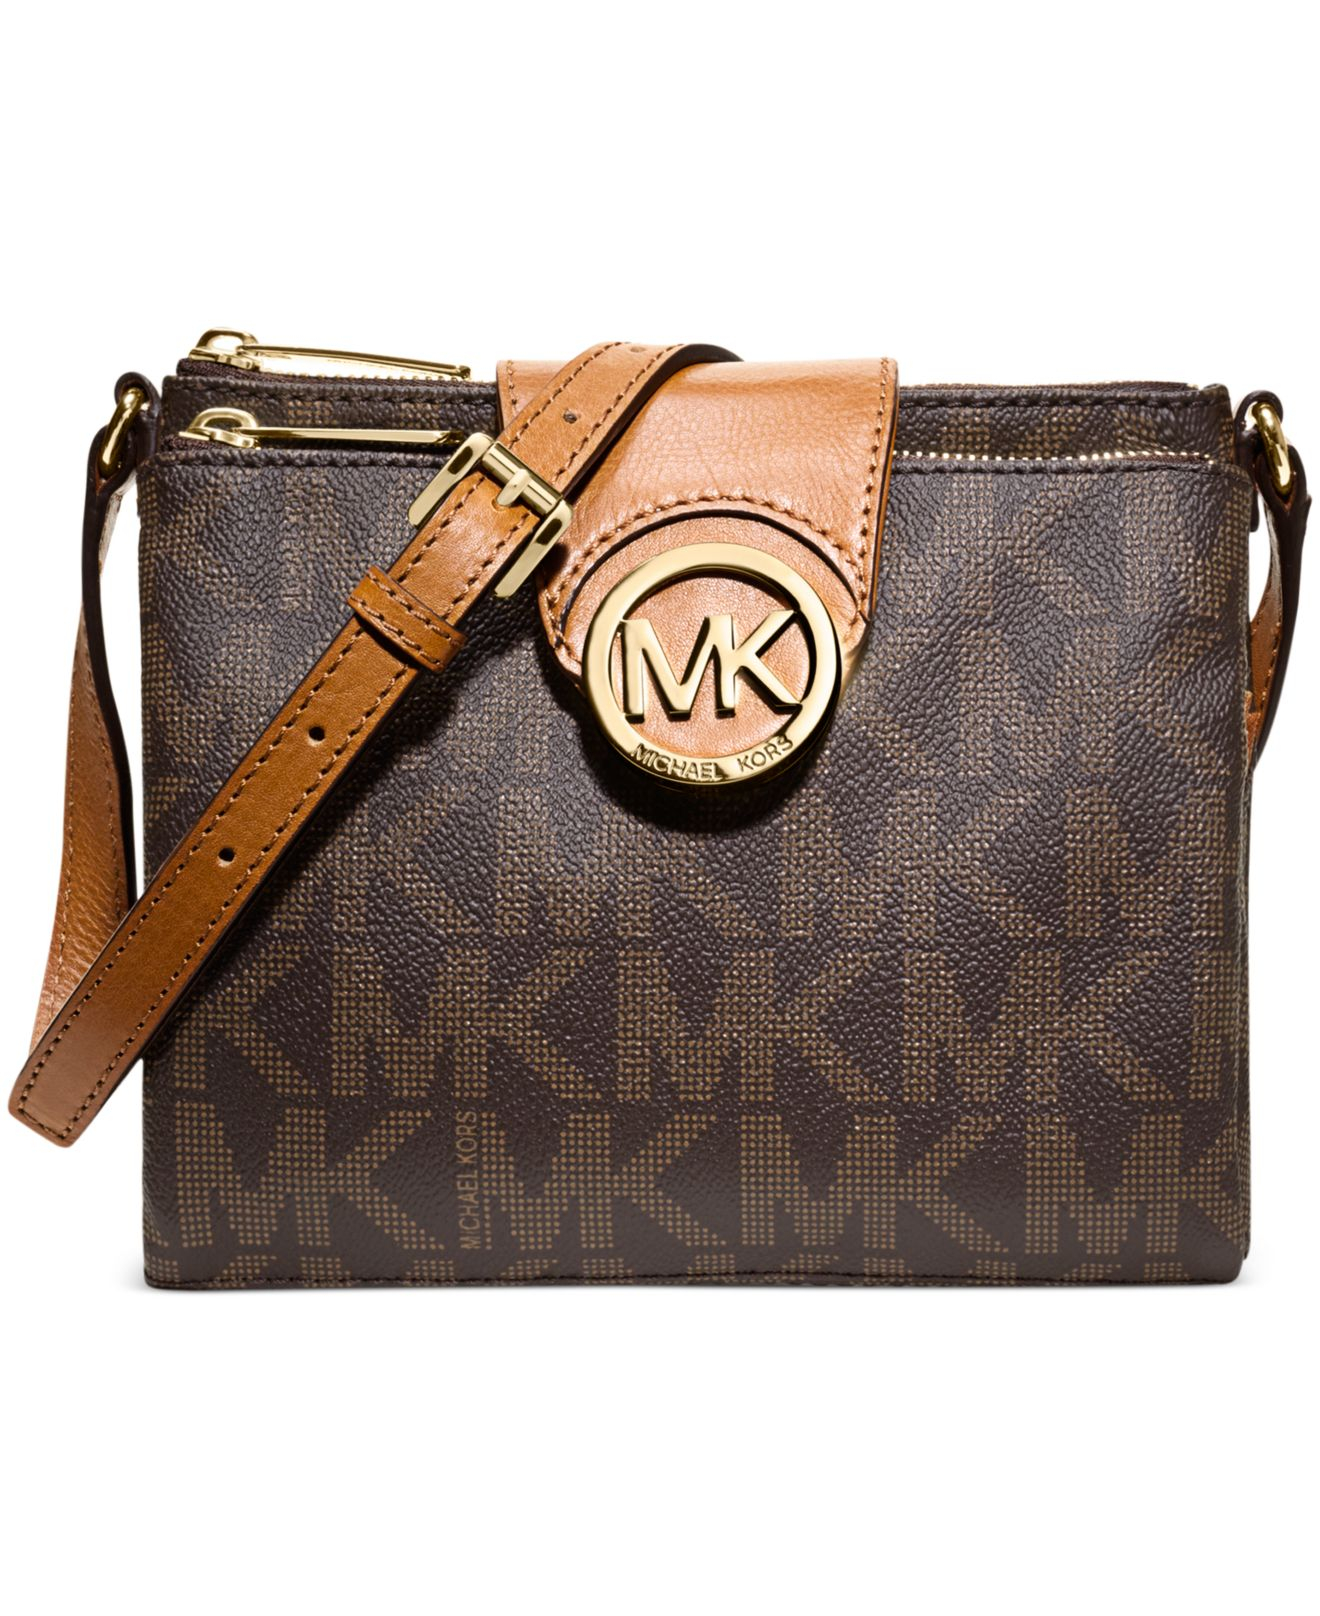 8b4816918 Gallery. Previously sold at: Macy's · Women's Michael By Michael Kors Fulton  ...